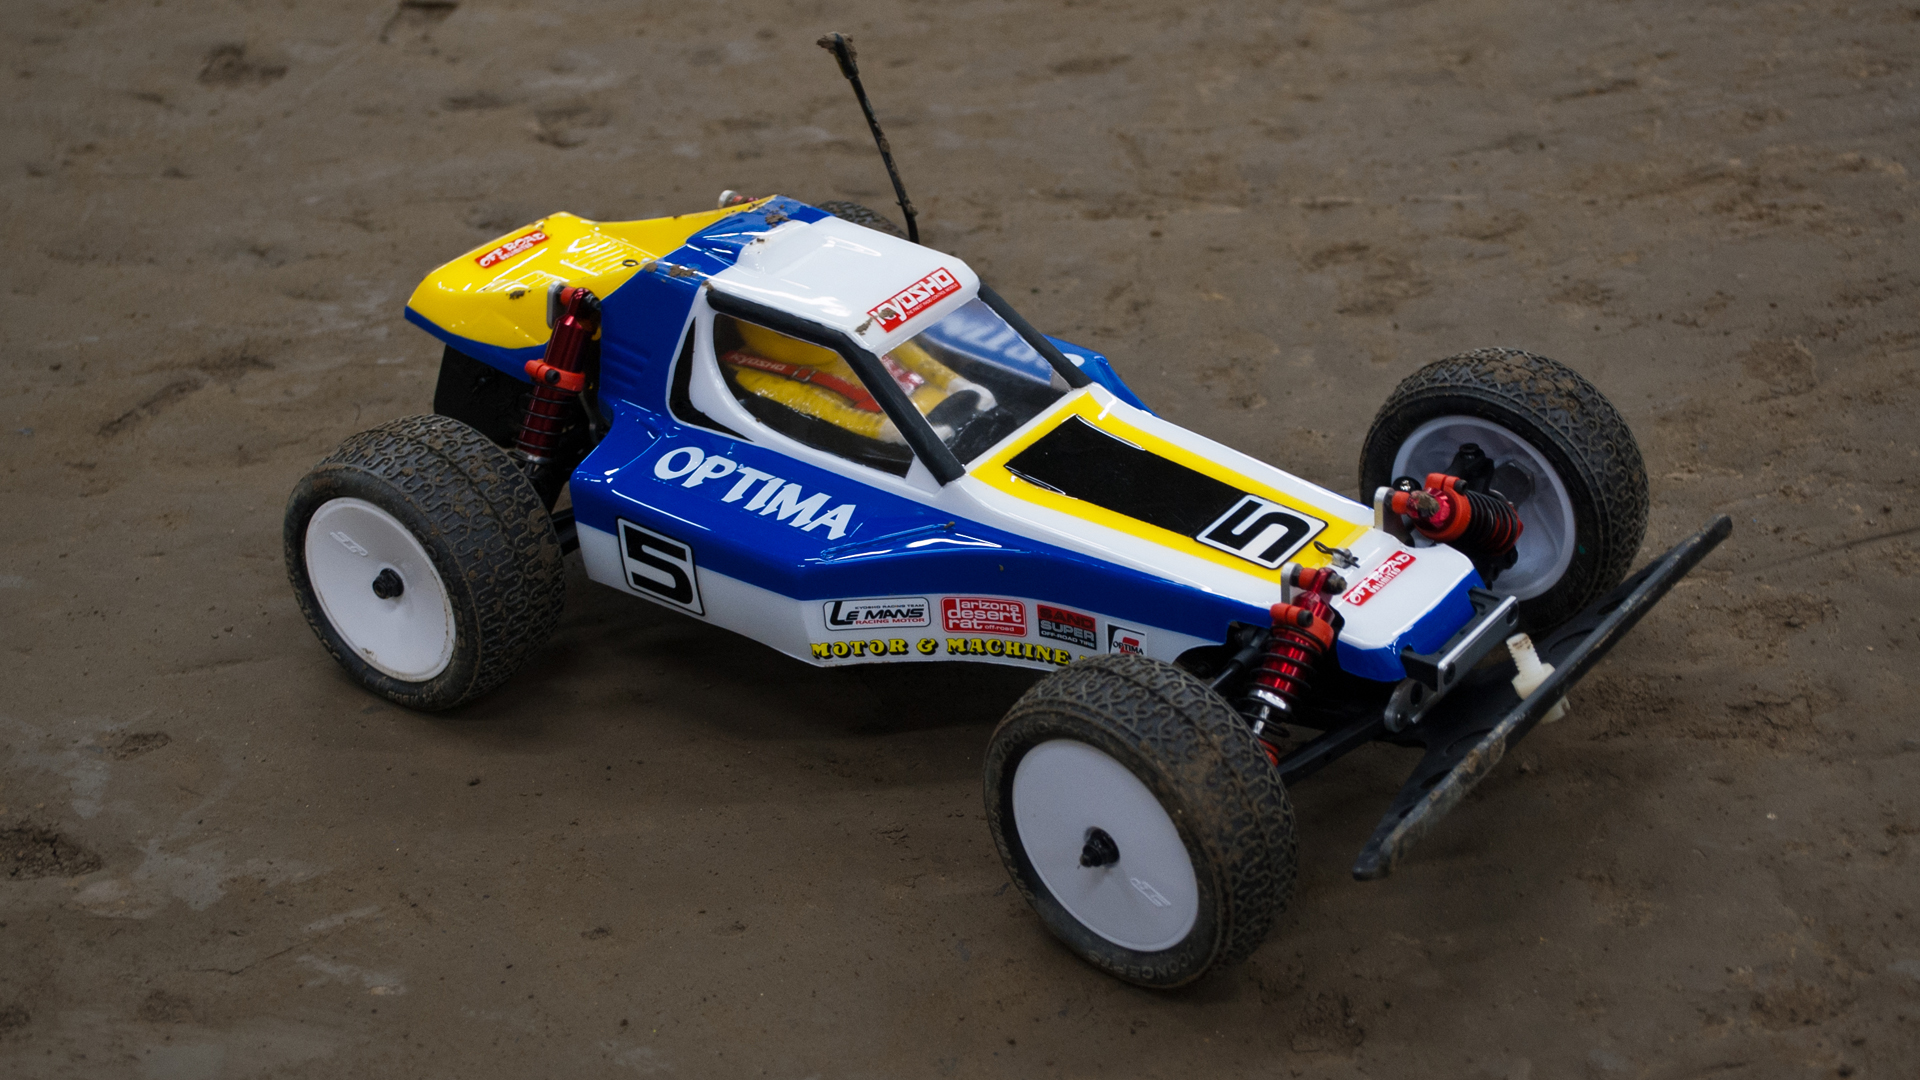 test driving a retro rc racer the kyosho optima tested. Black Bedroom Furniture Sets. Home Design Ideas